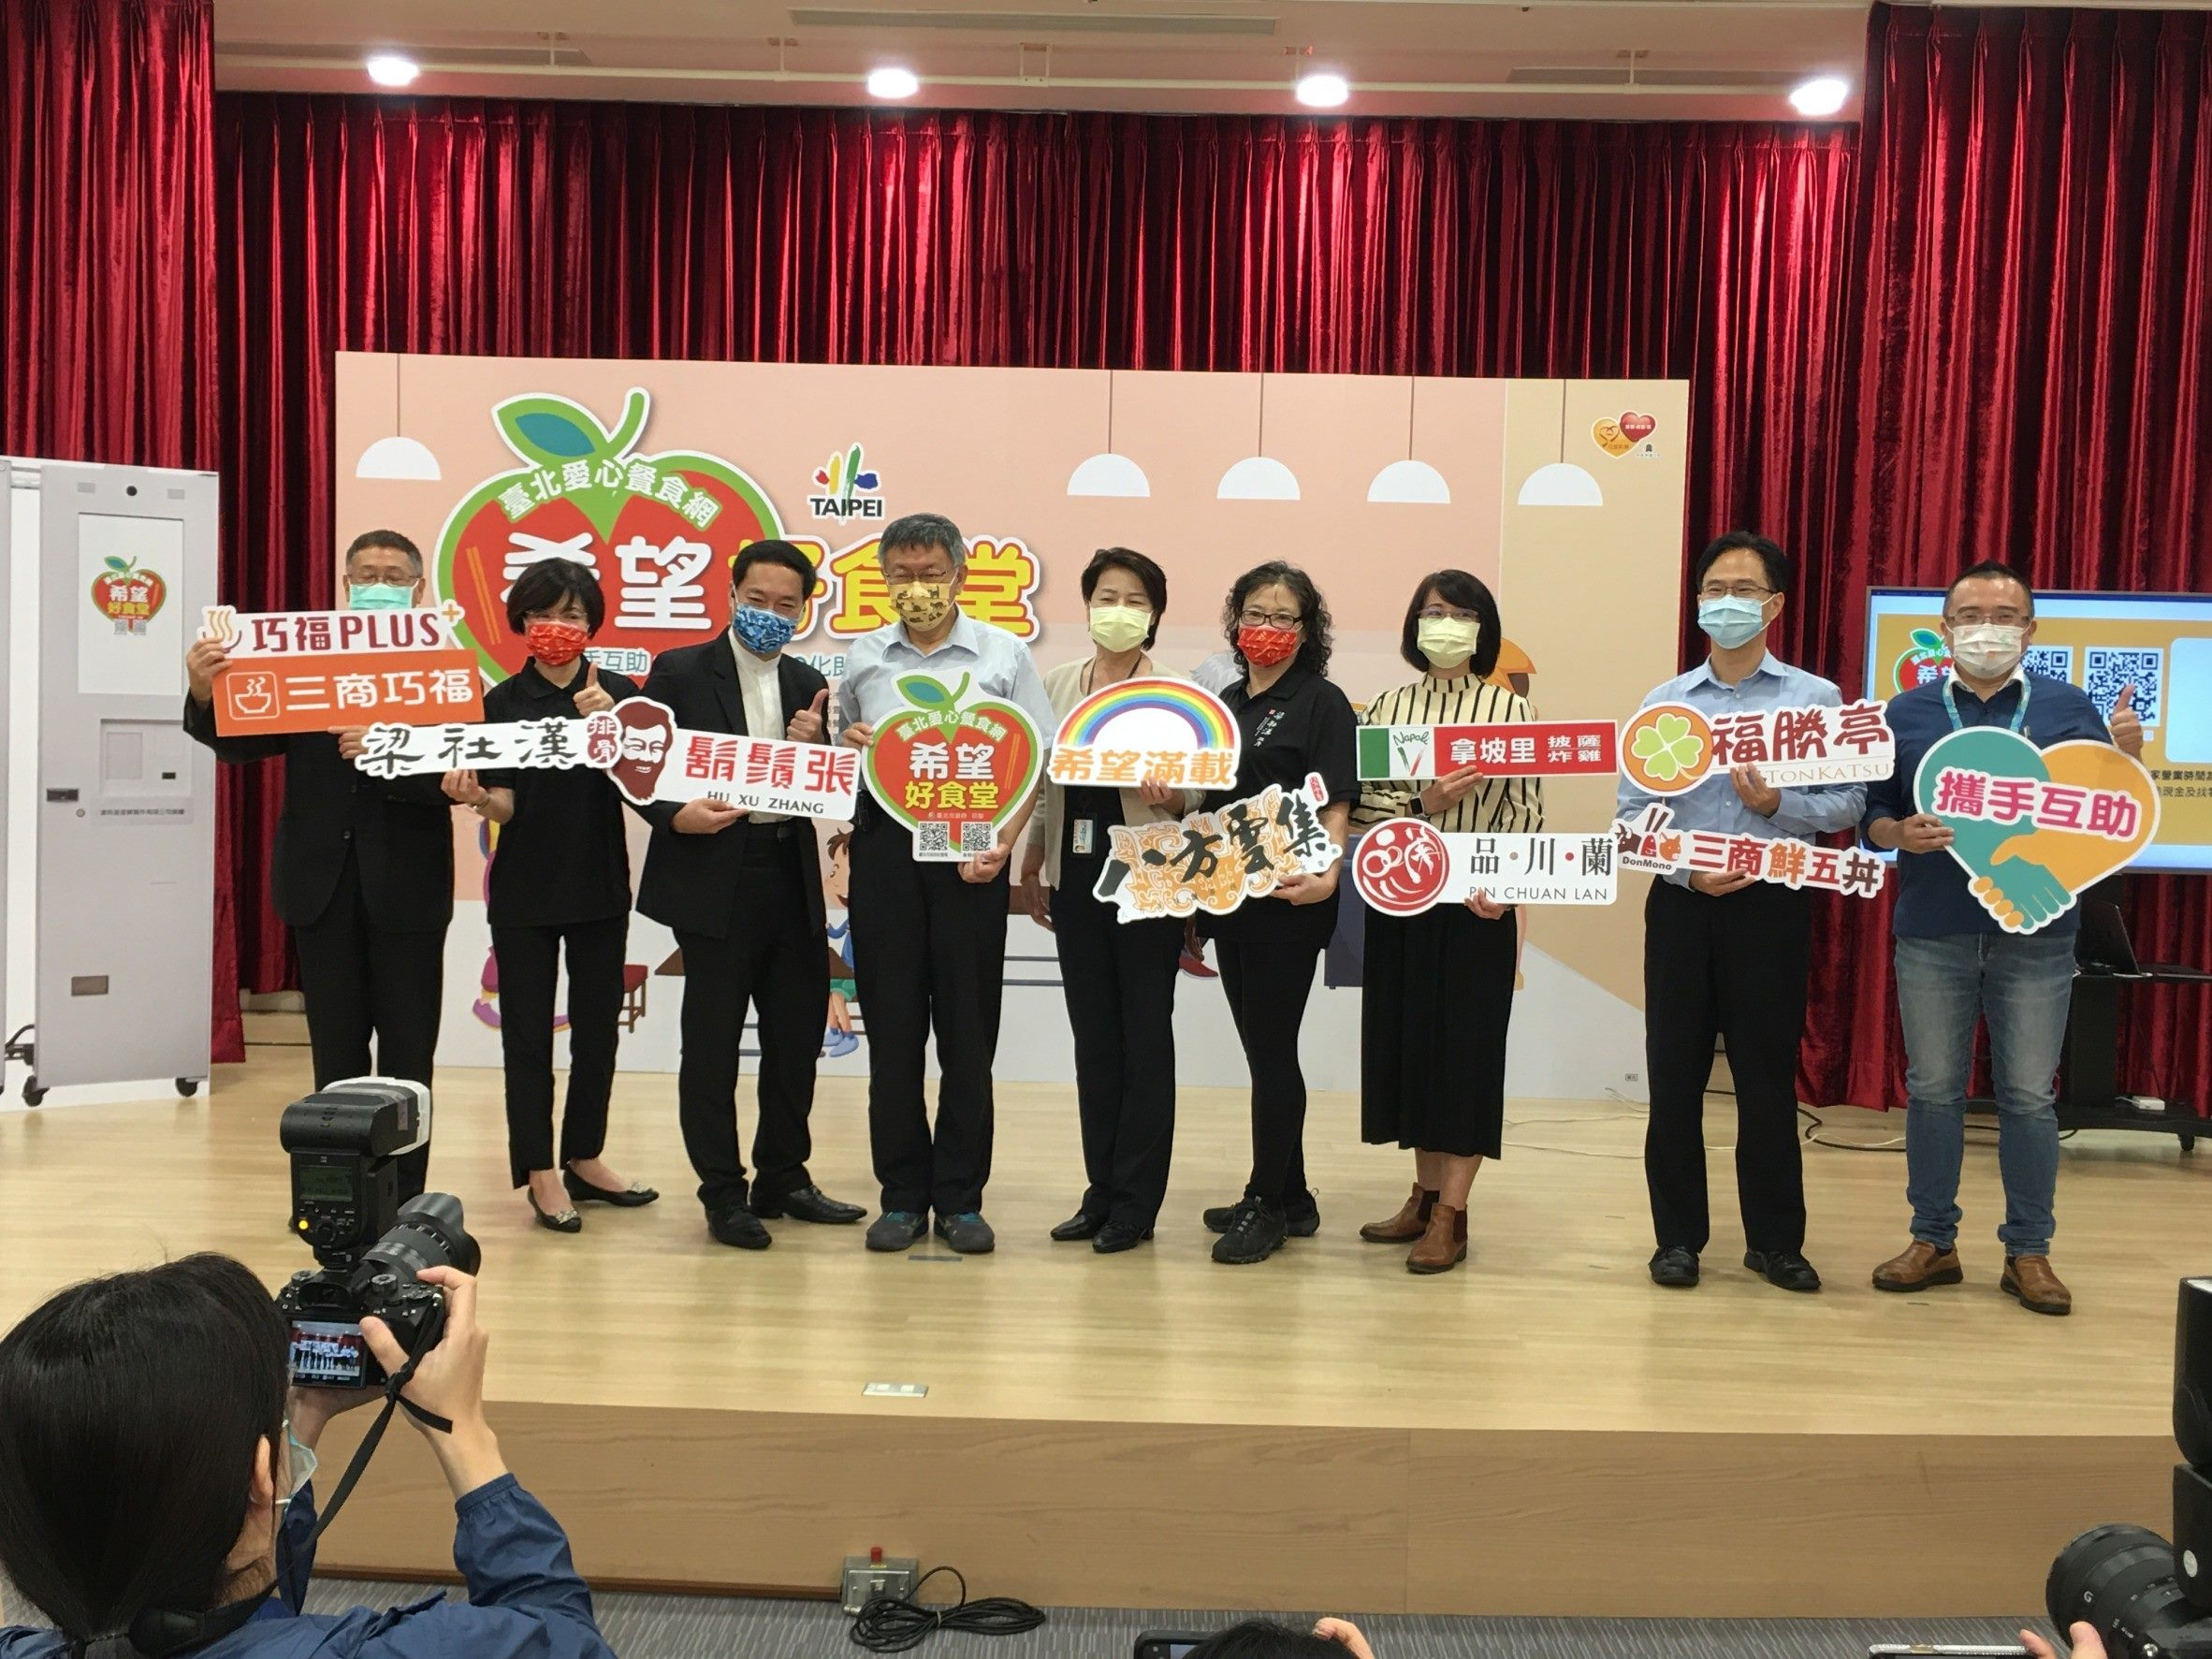 Taipei Charity Meal Network Sees Support from Charity Organization, Companies